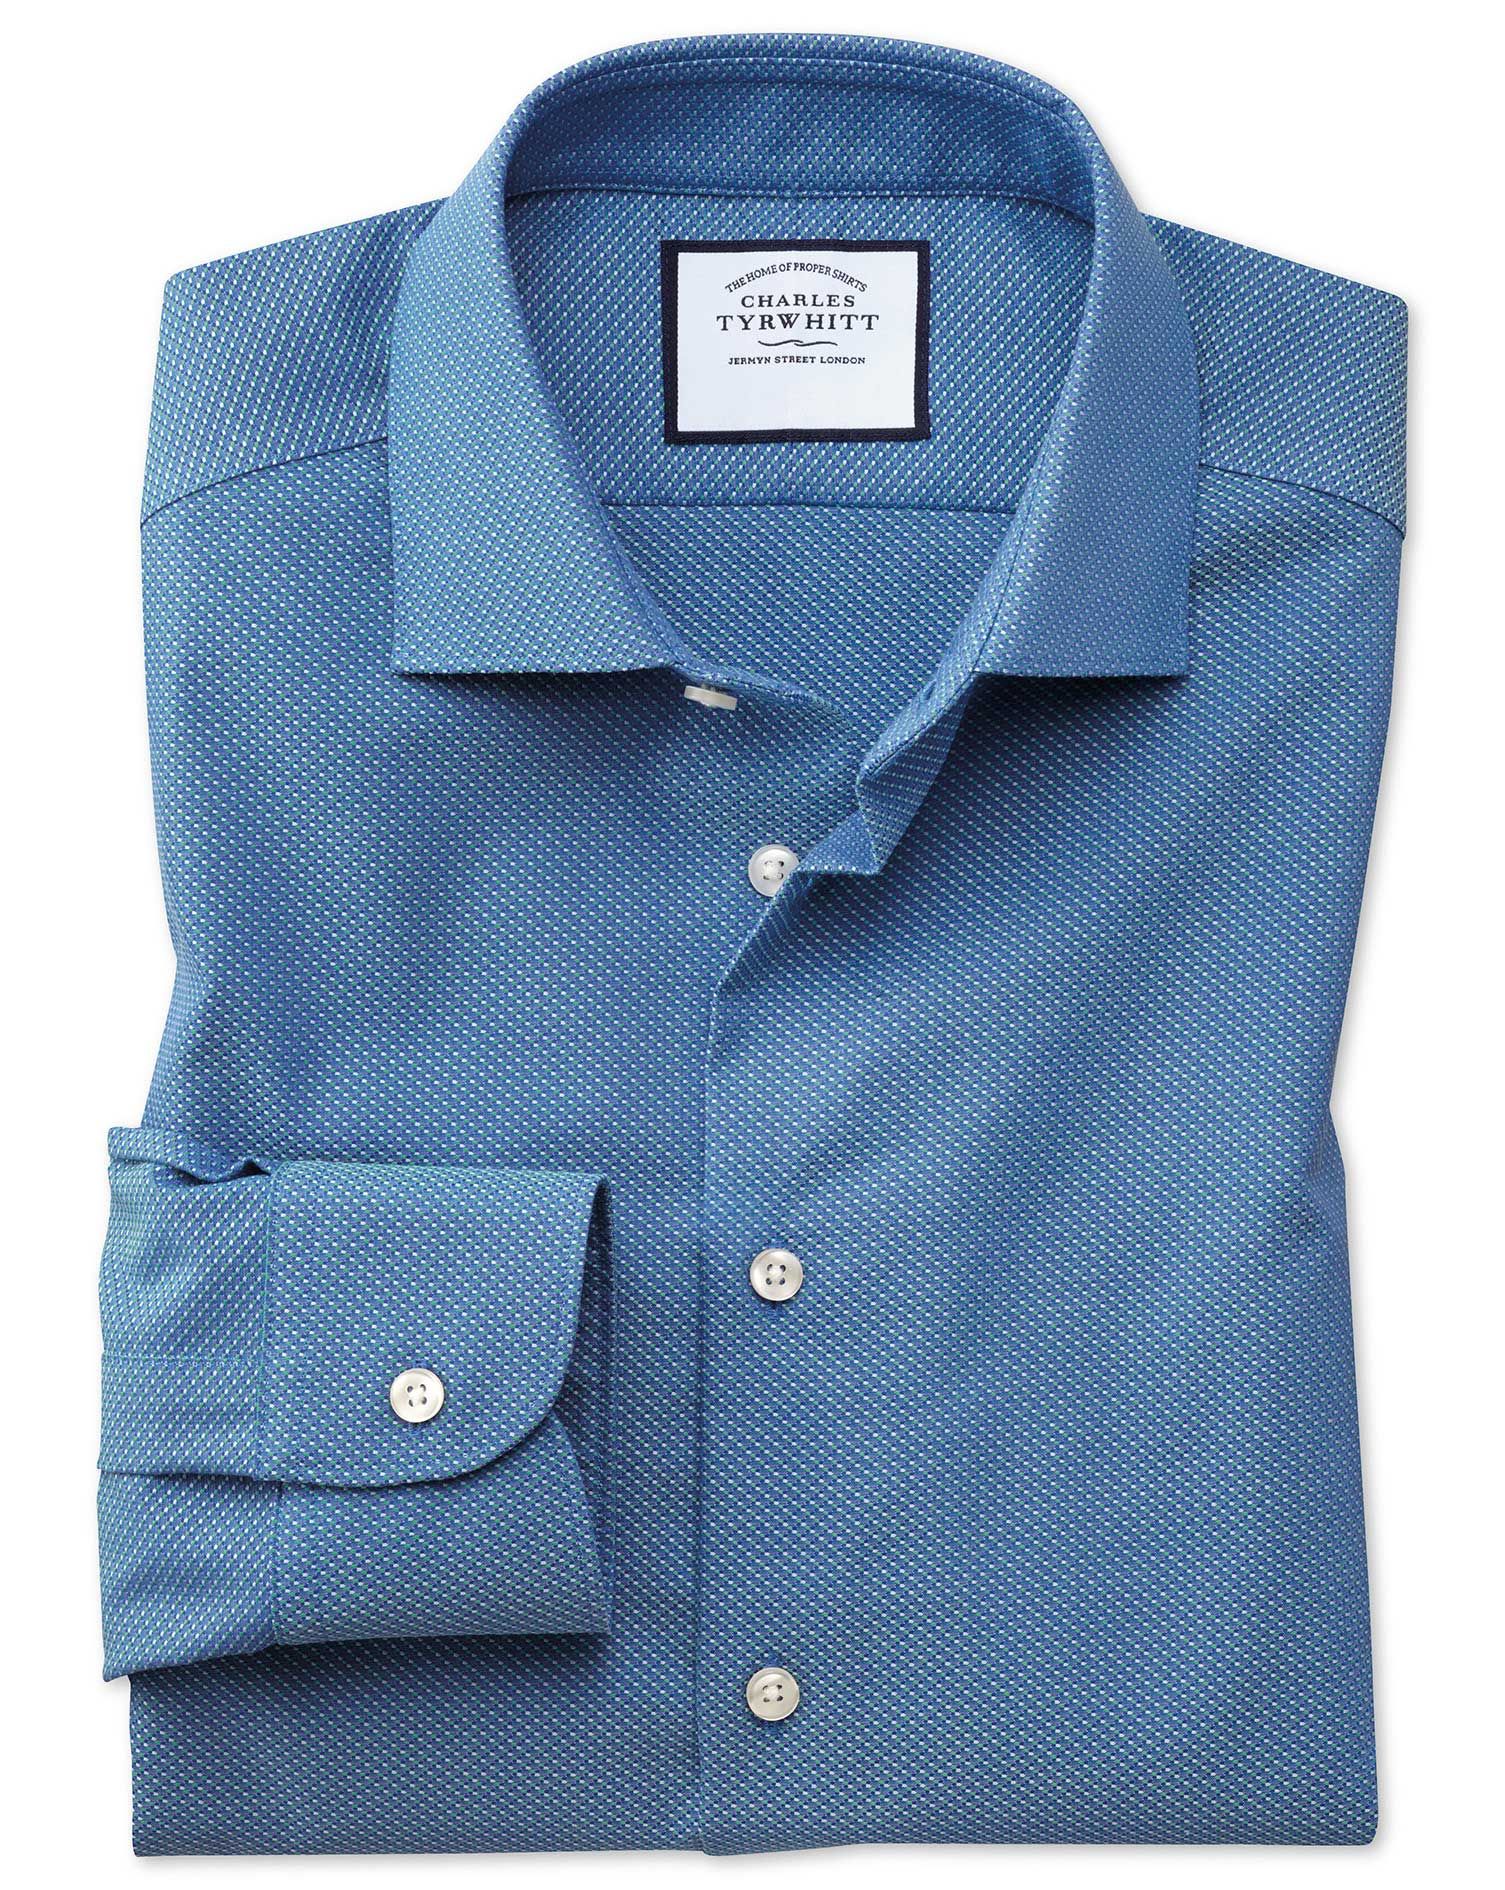 Slim Fit Business Casual Non-Iron Blue and Teal Dash Dobby Cotton Formal Shirt Single Cuff Size 15.5